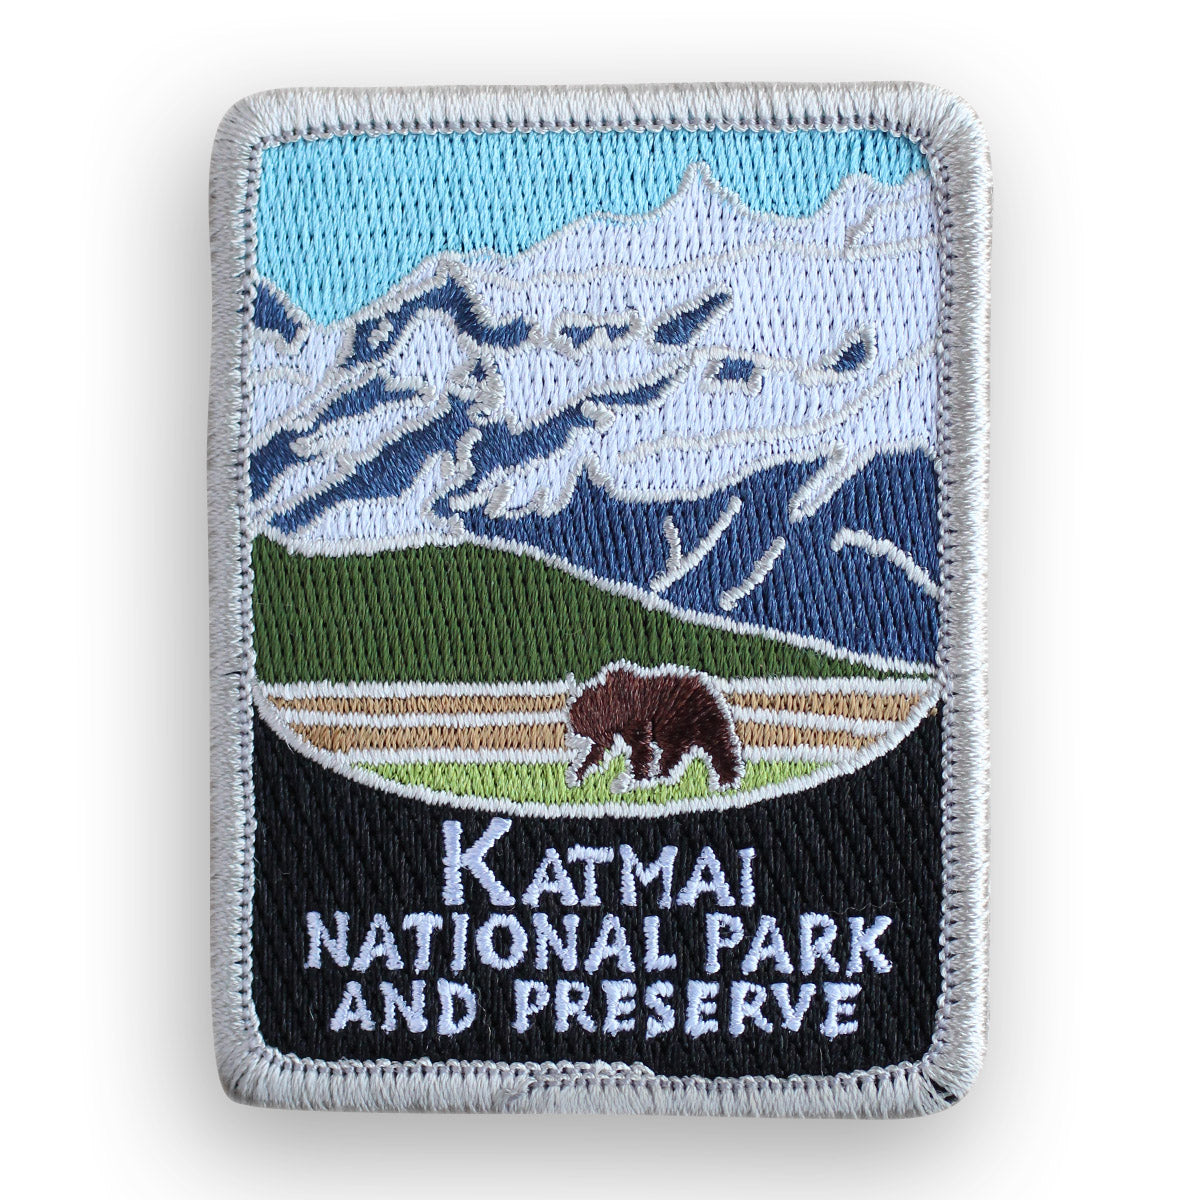 Katmai National Park and Preserve Traveler Patch